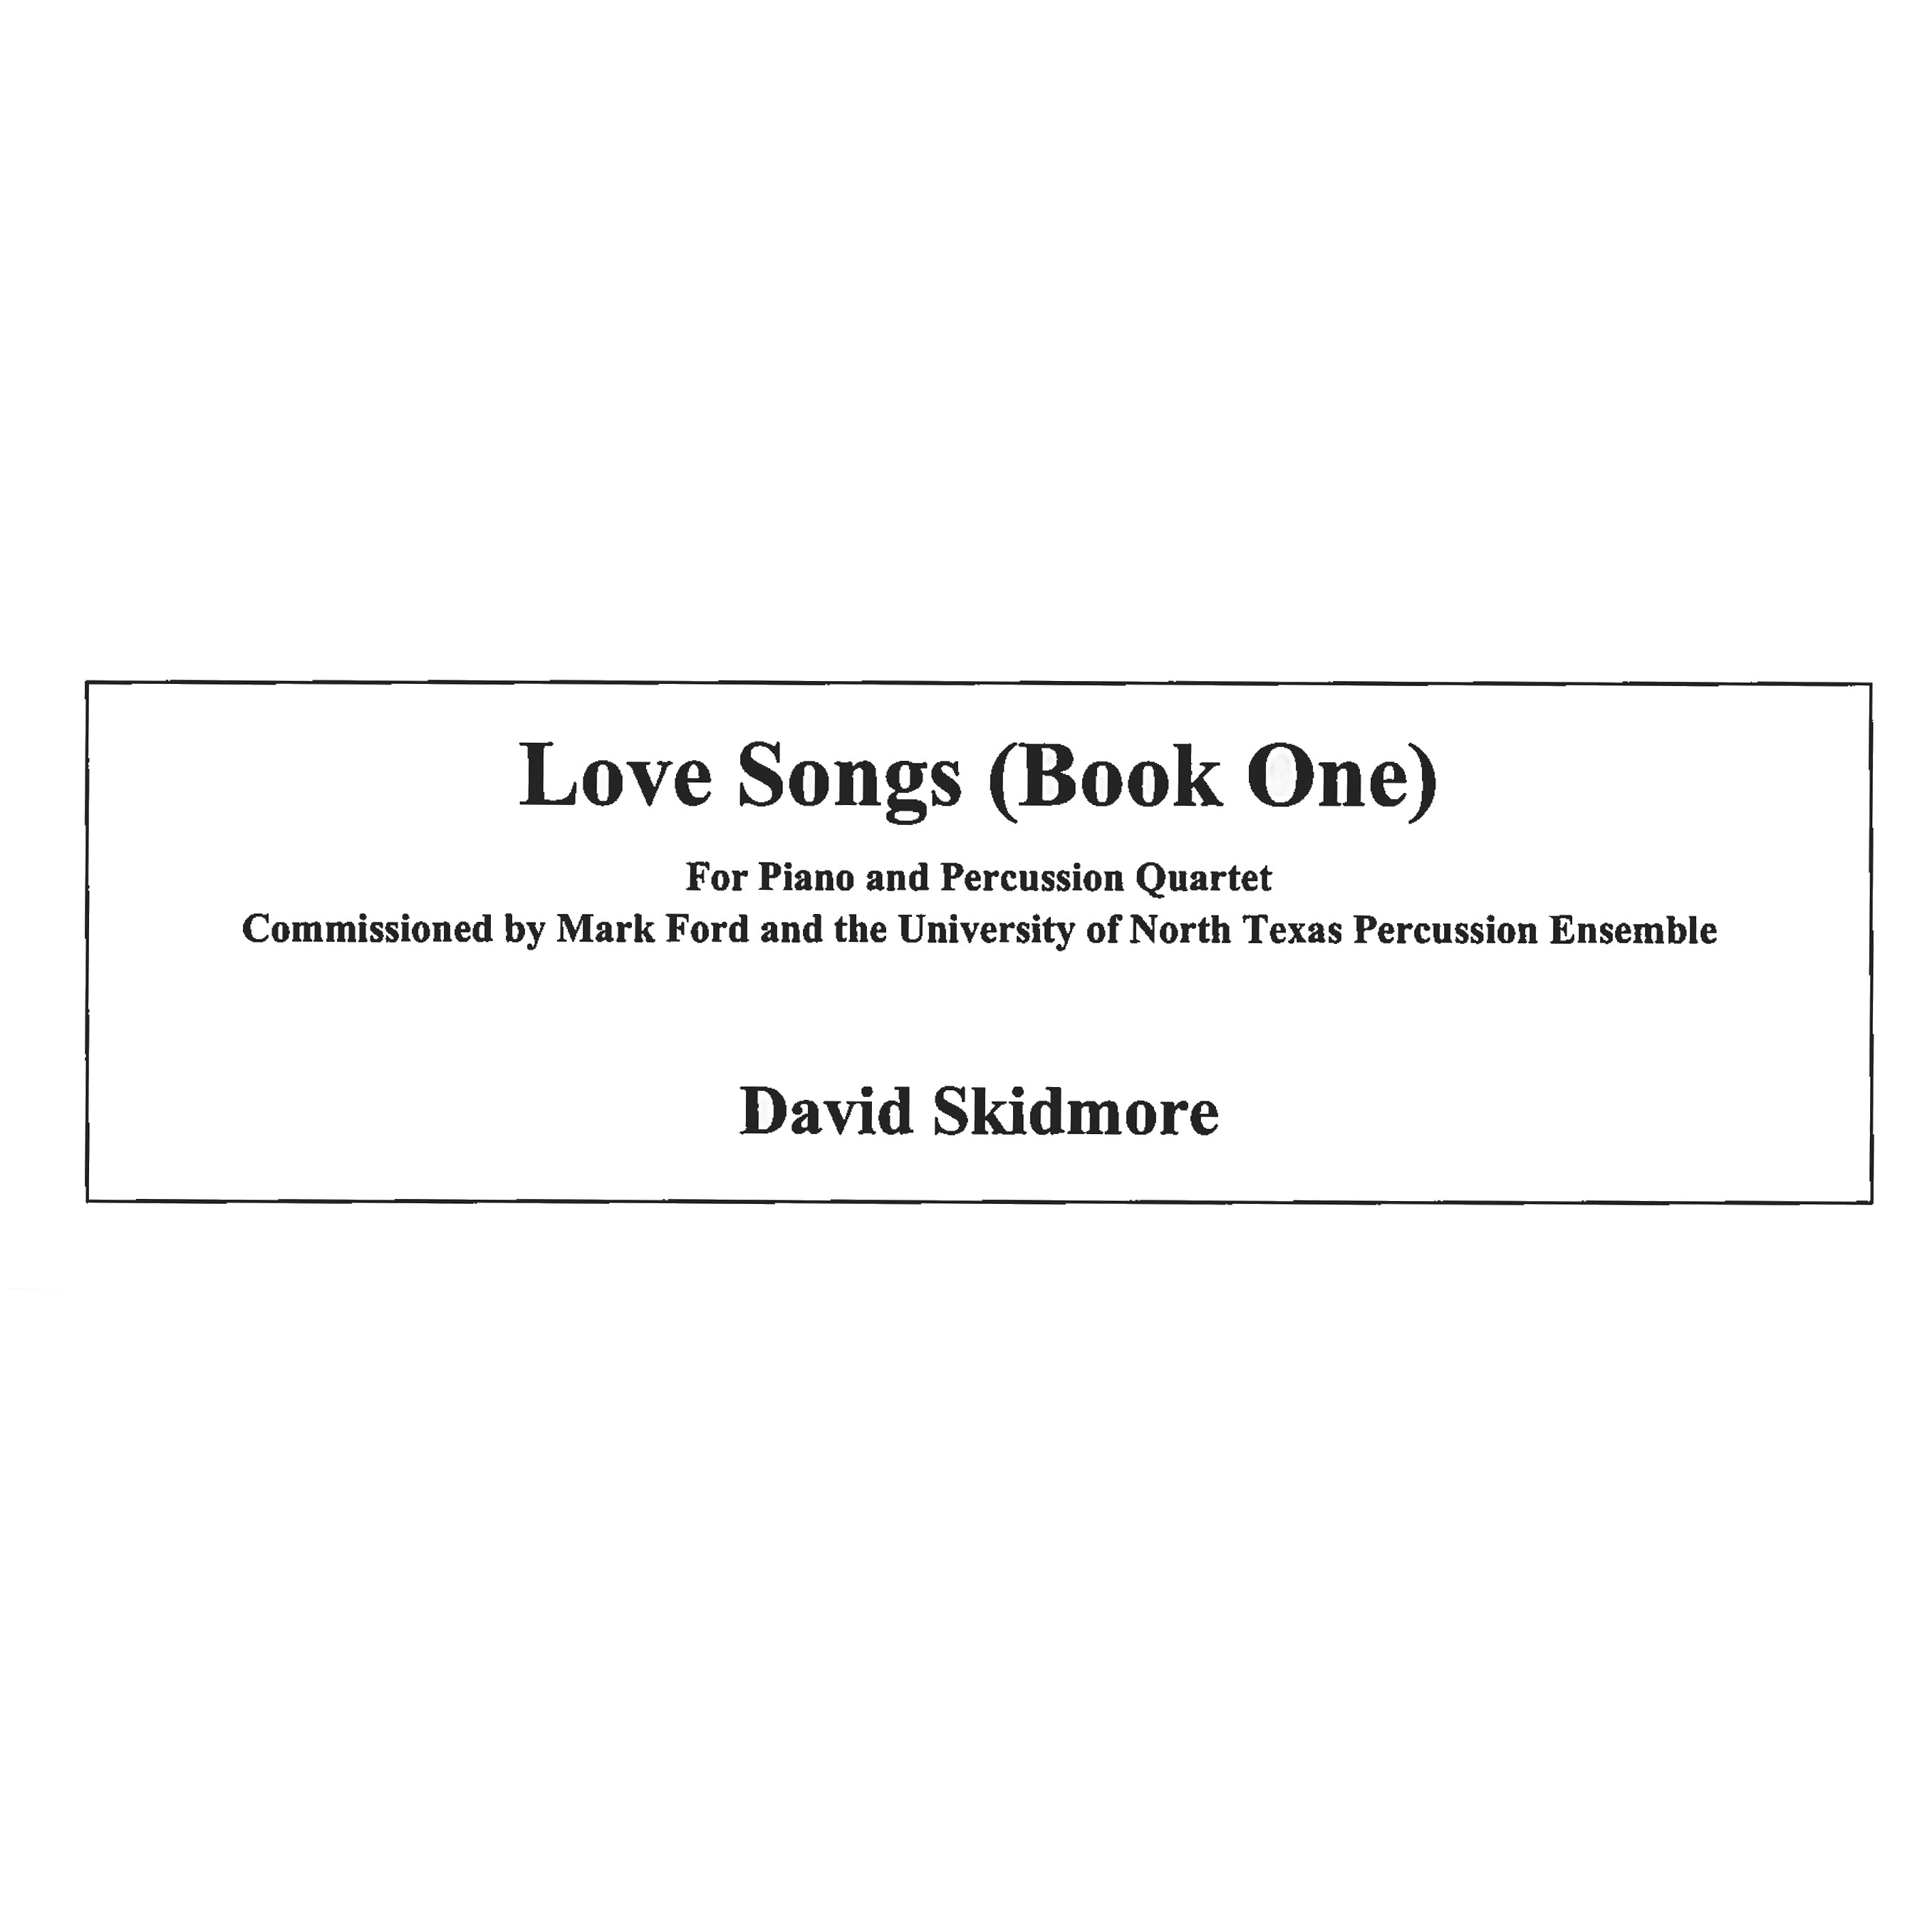 Love Songs - Book One by David Skidmore